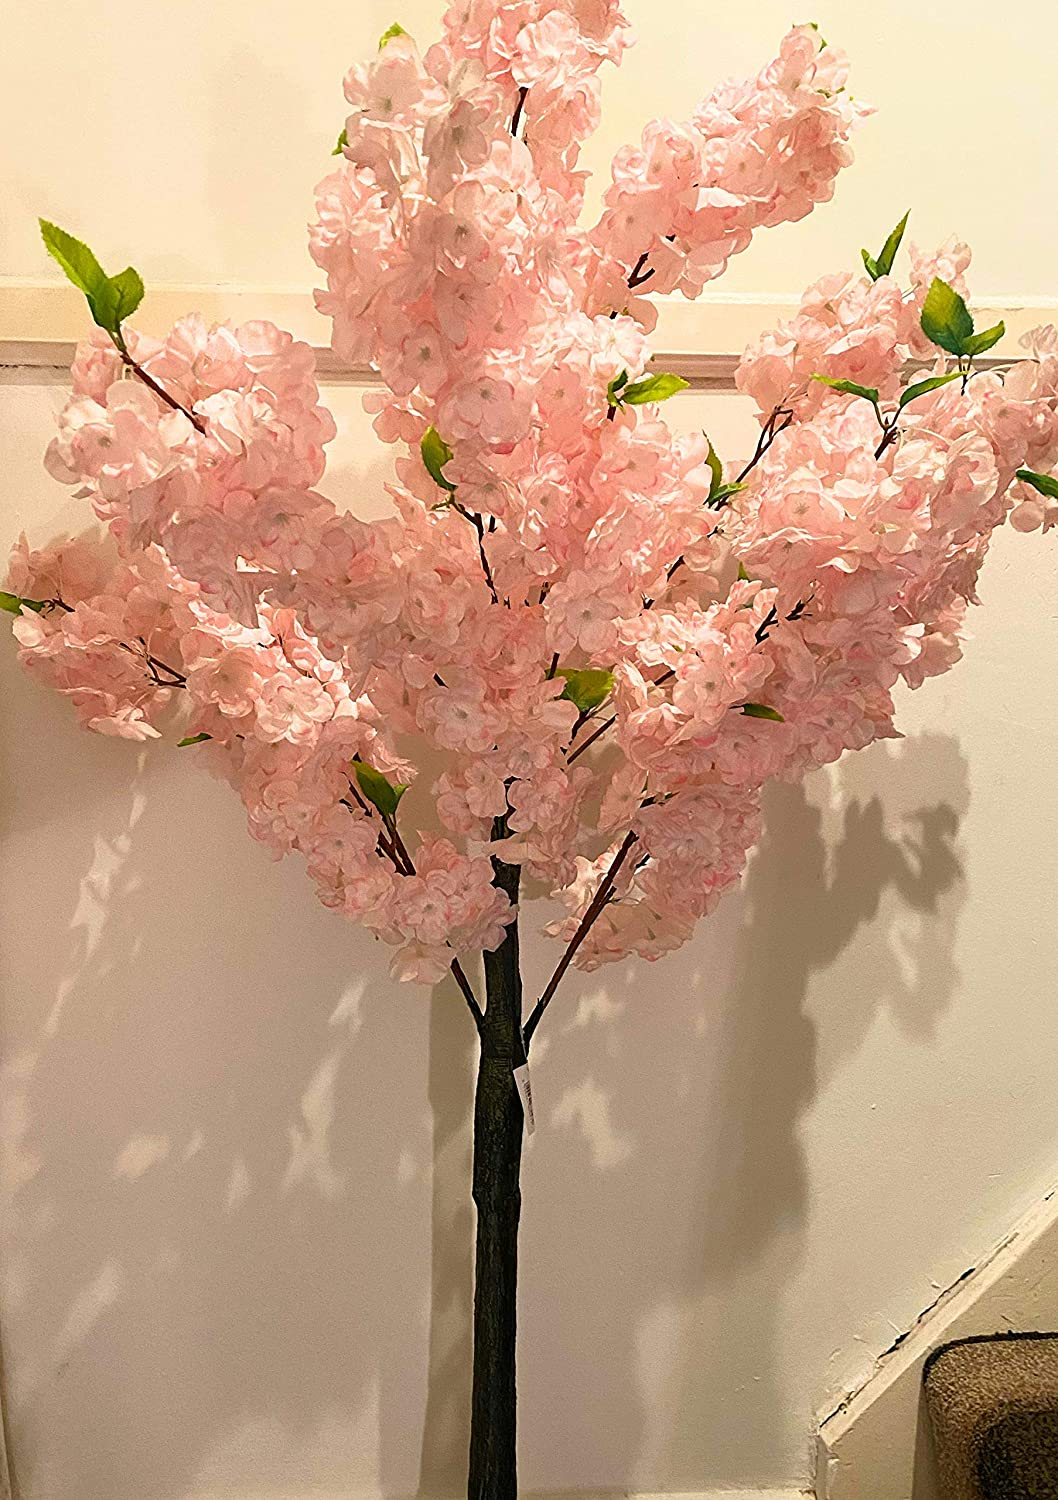 Cream Red Hot Plants Artificial Blossom Tree with Cream or Pink Cherry Blossom Flowers